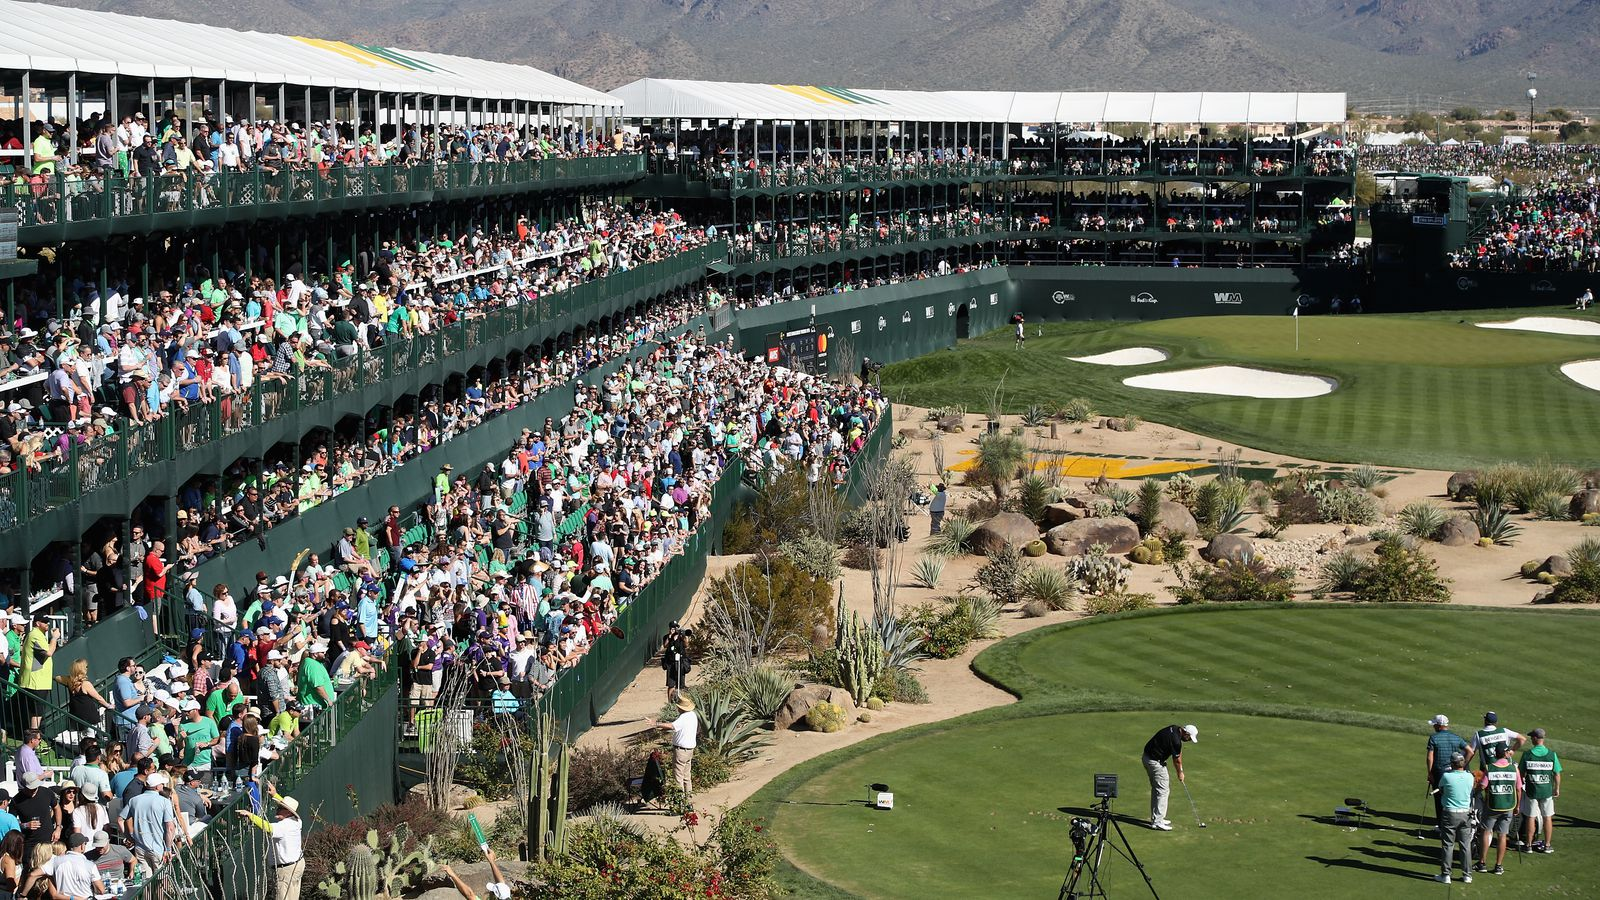 Golfer on the 16th hole of TPC Scottsdale, Phoenix Open, Scottsdale AZ